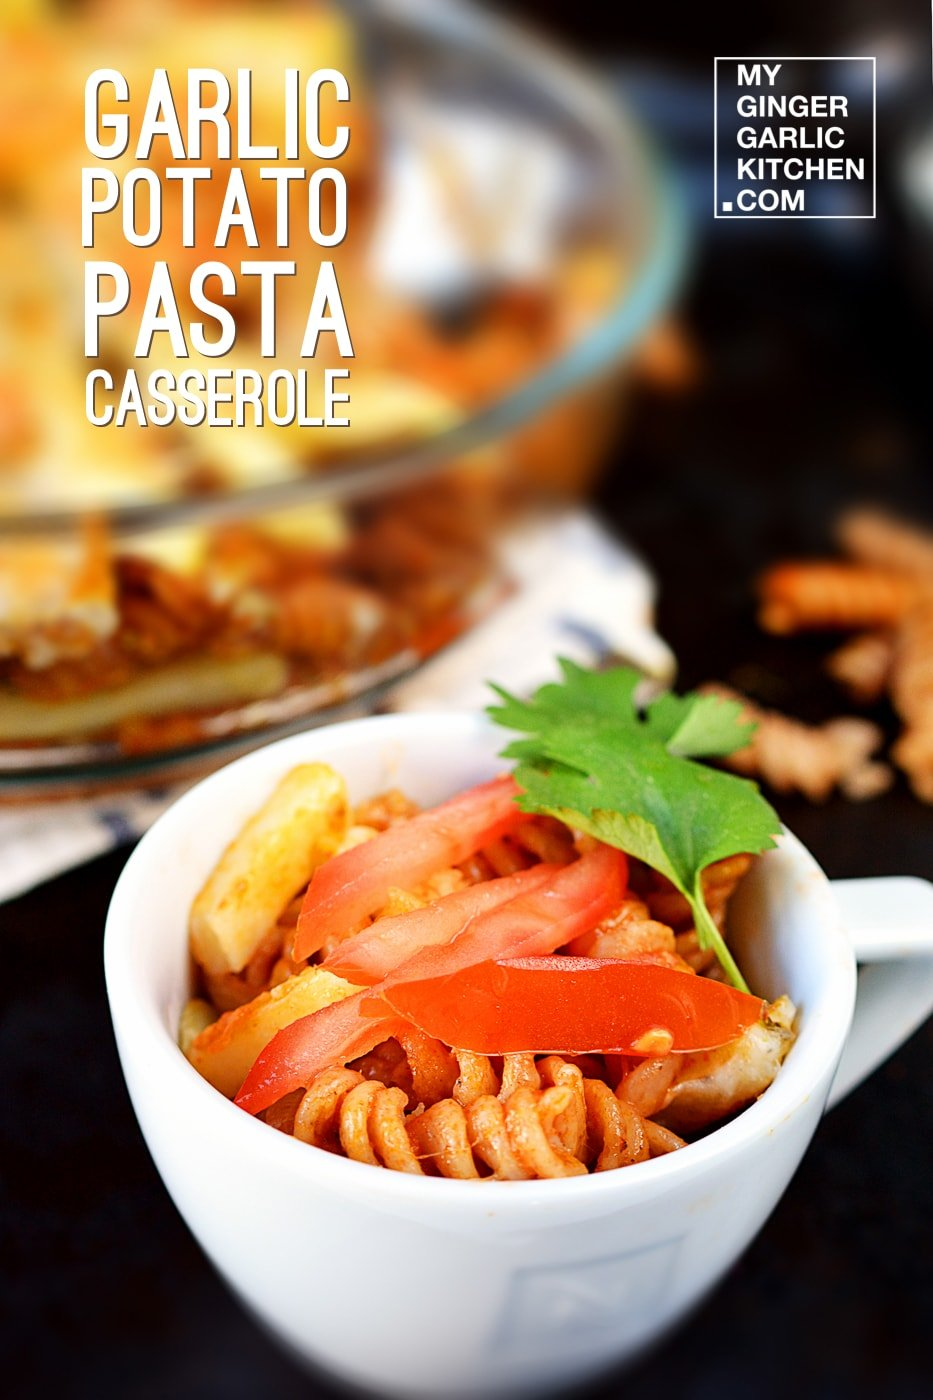 Image of Garlic Potato Pasta Casserole Recipe